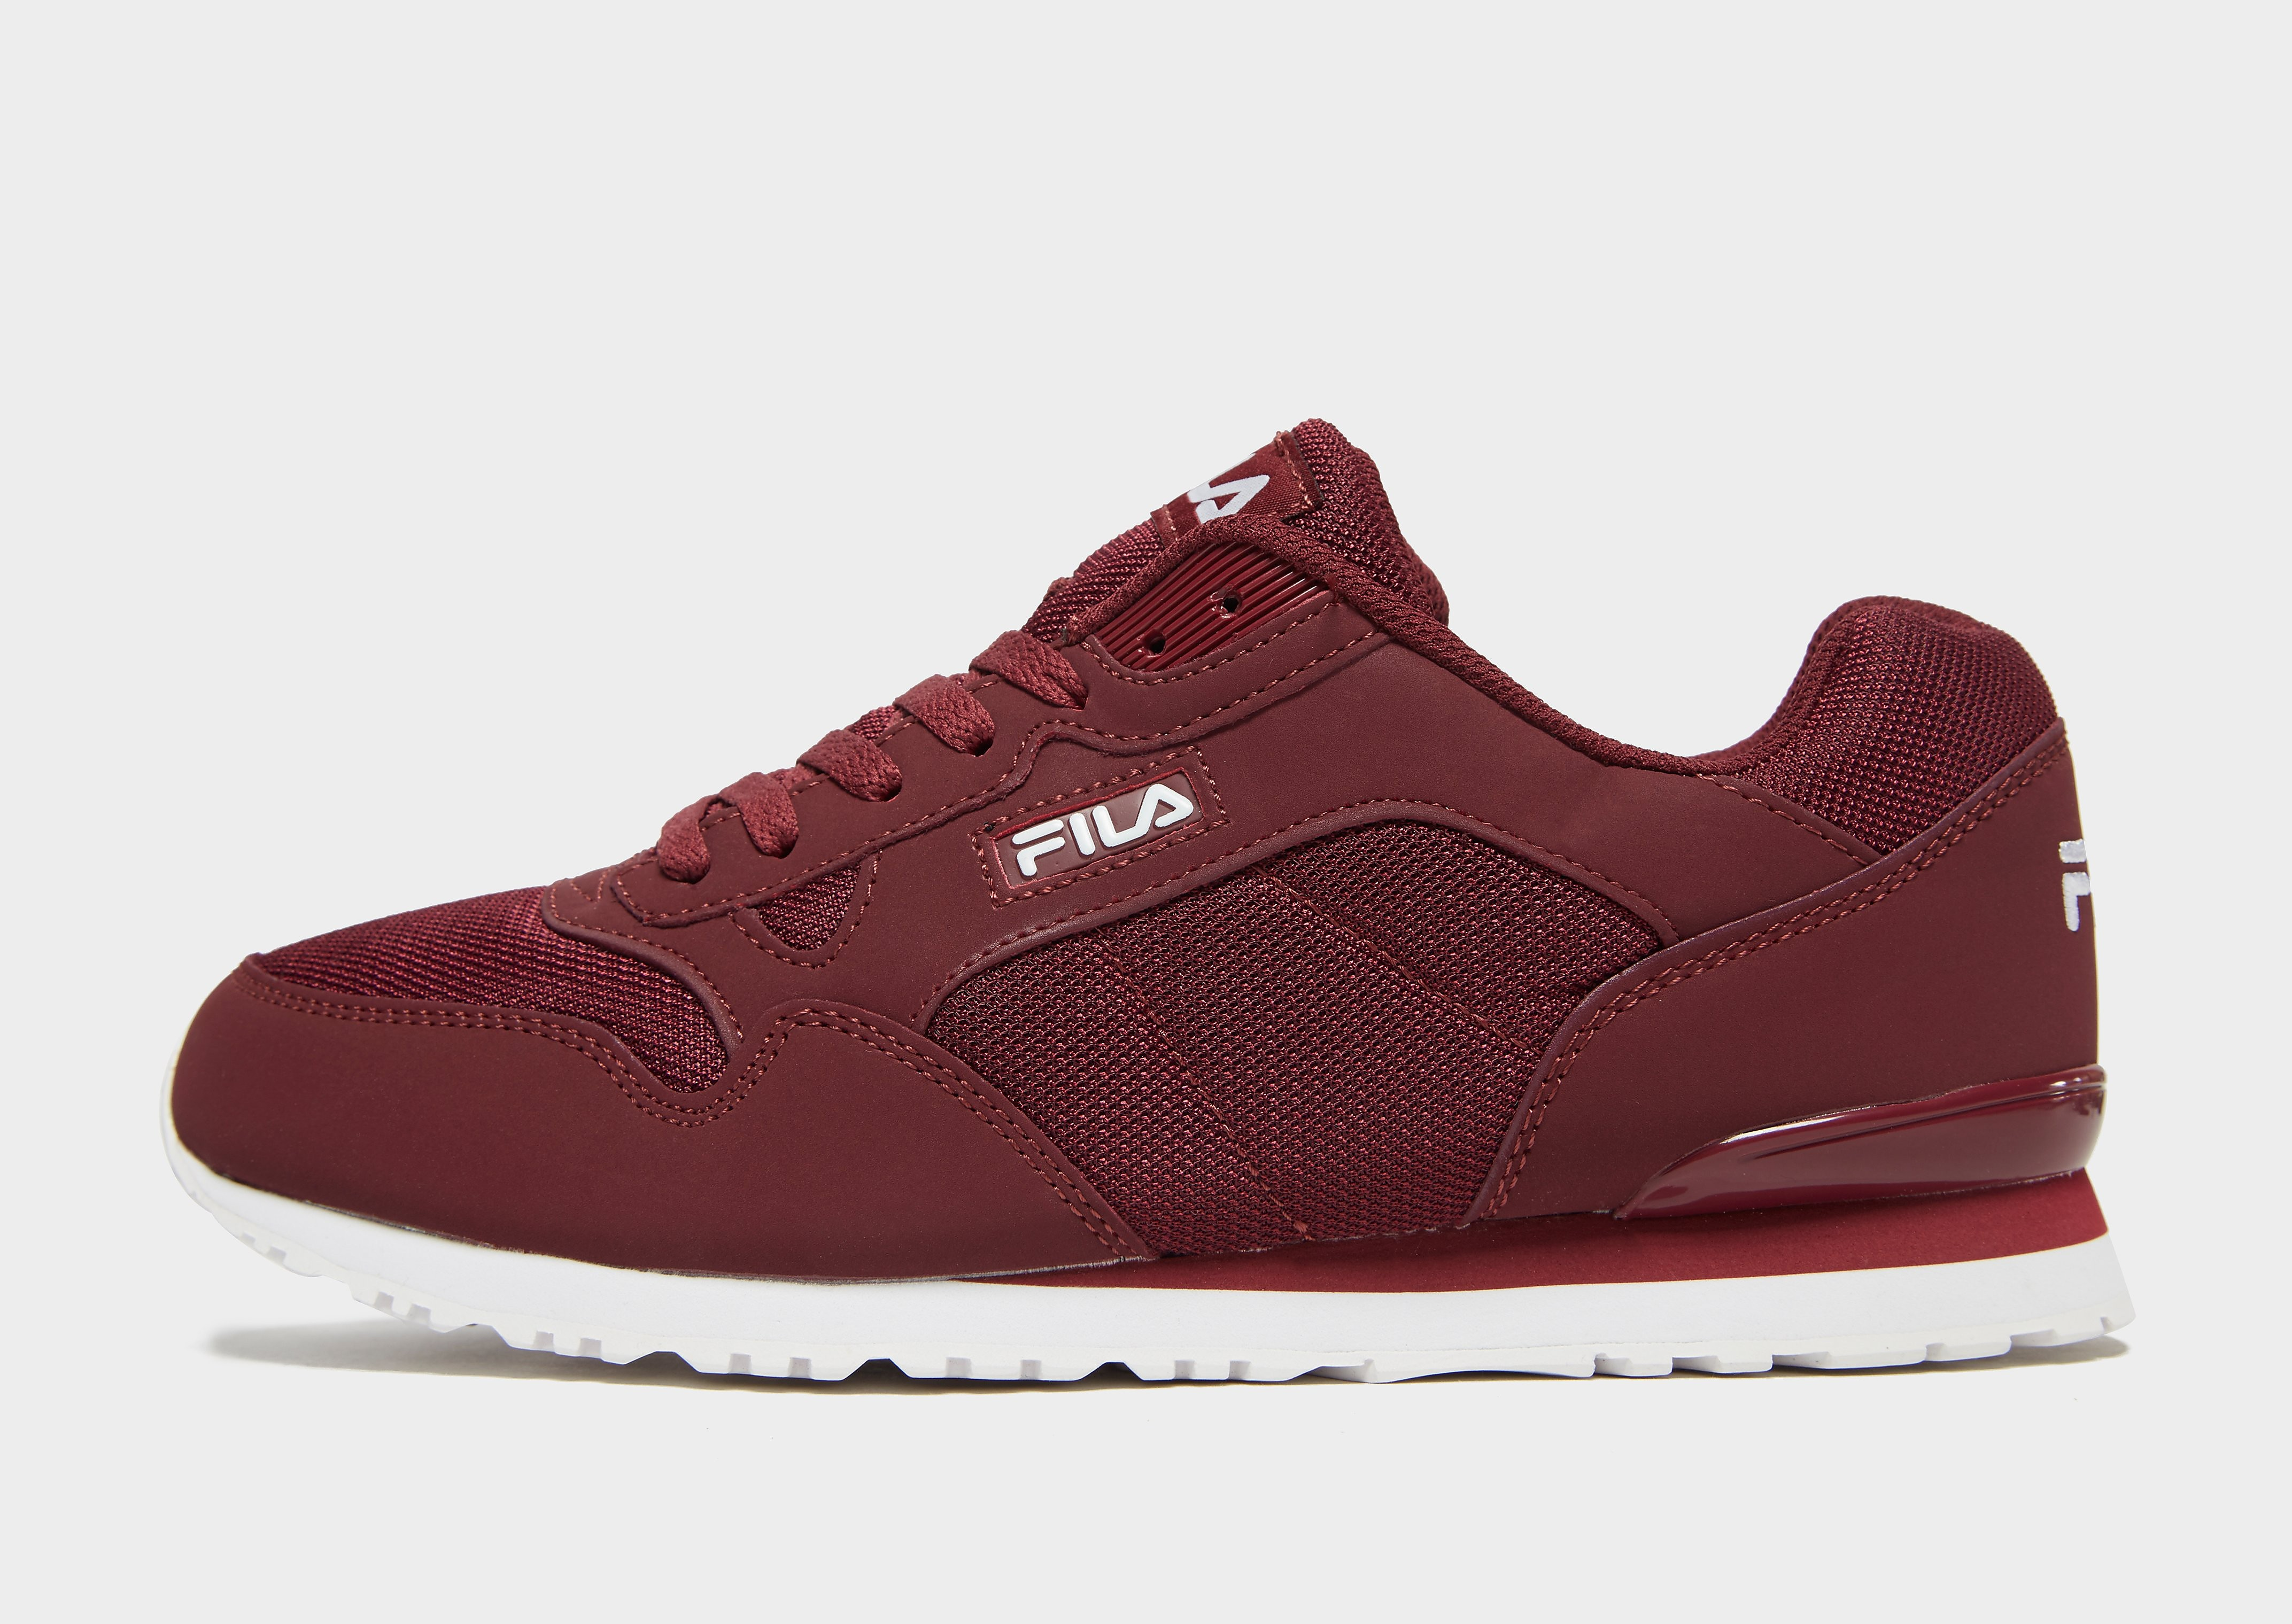 Fila Cress - Only at JD